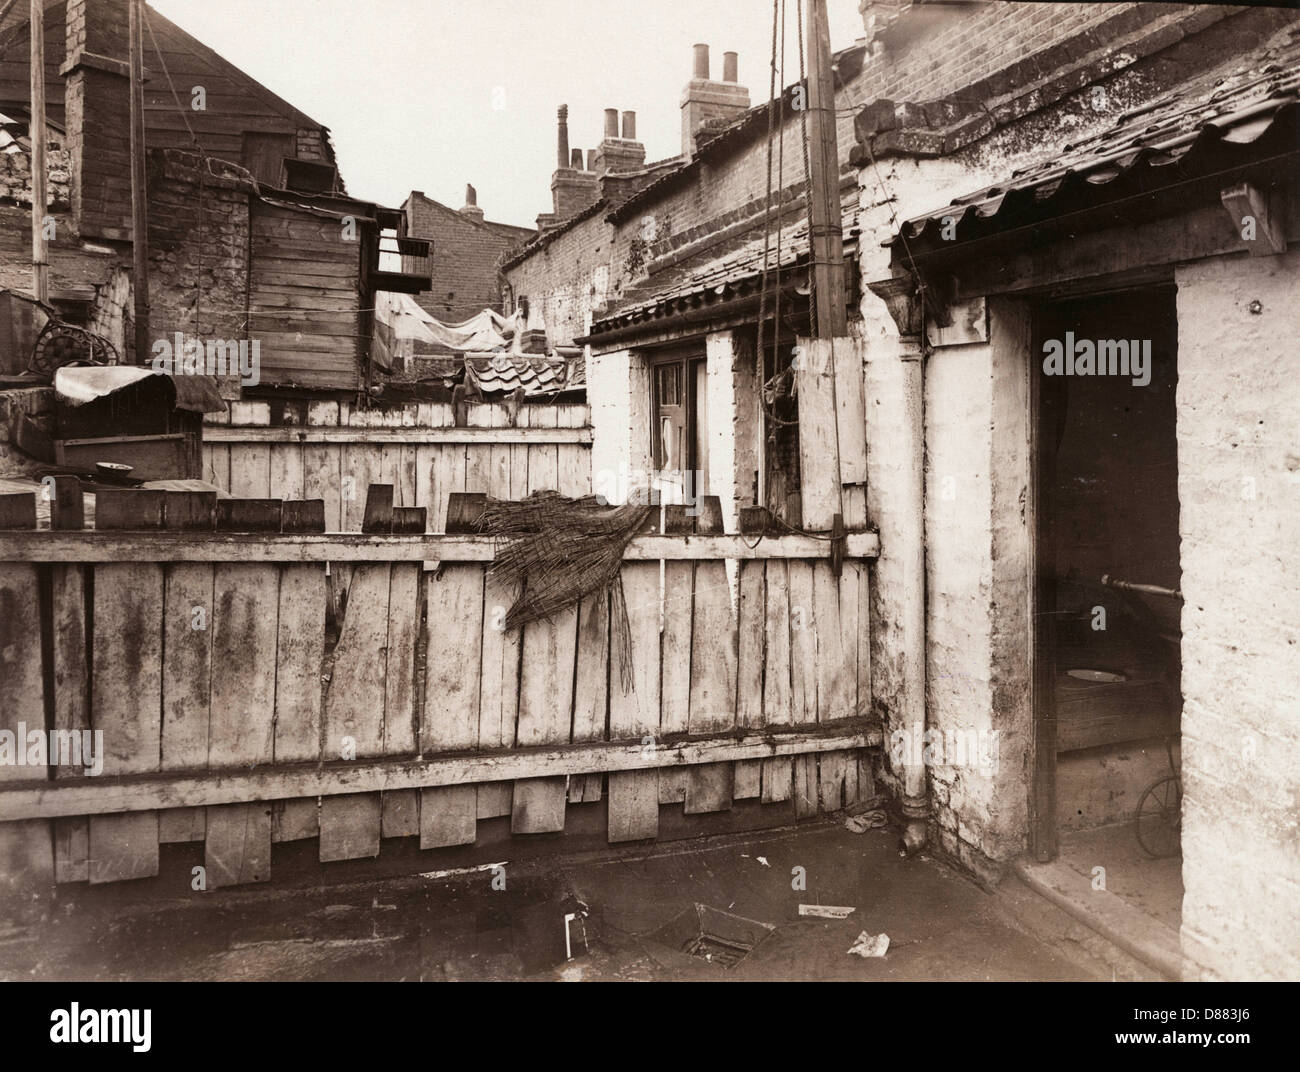 Back Yard Limehouse Slum - Stock Image